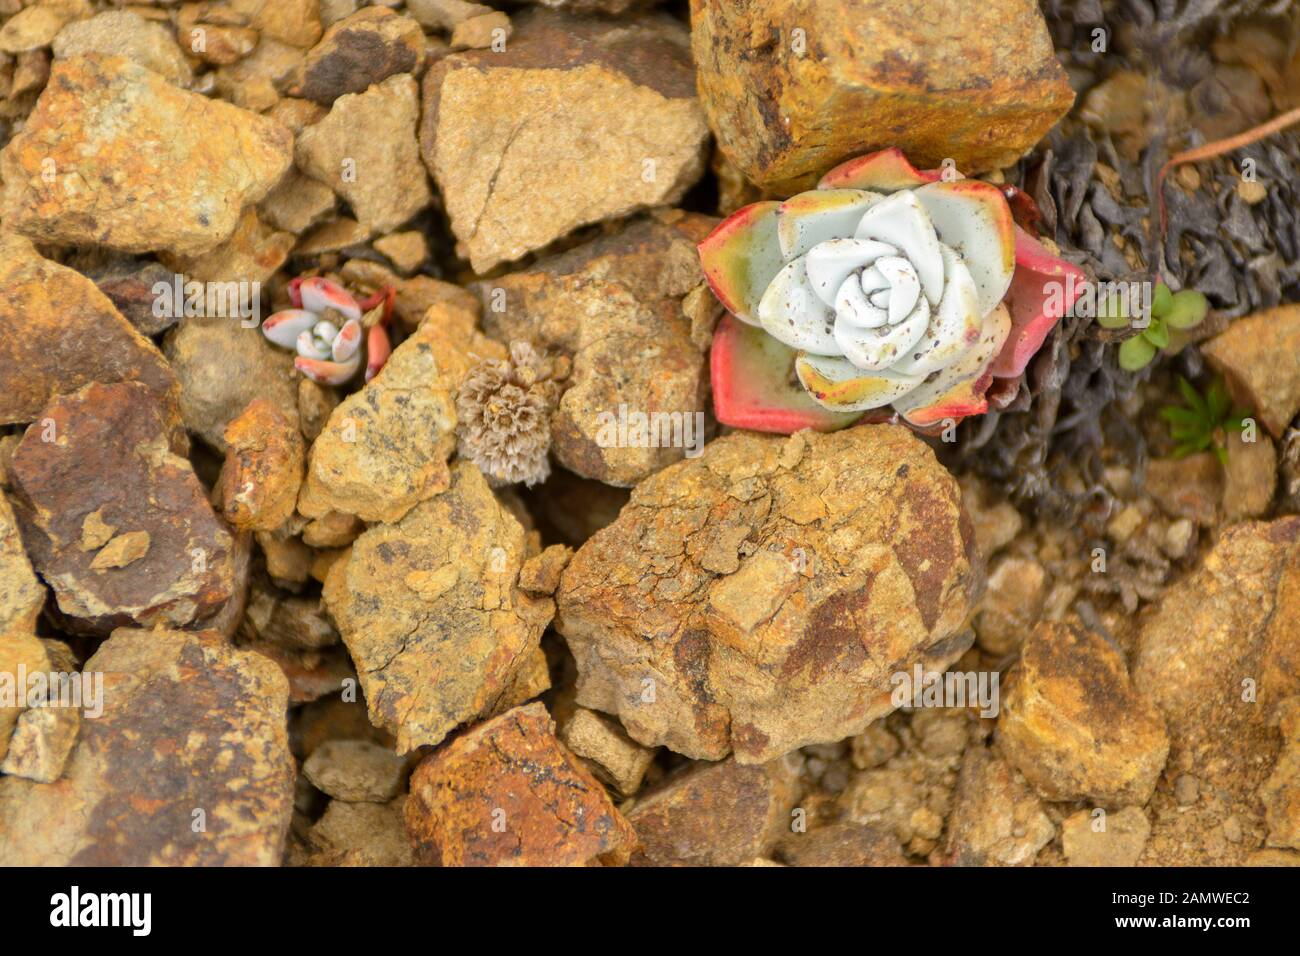 Red Green Echeveria Succulents Growing On Rocks Stock Photo